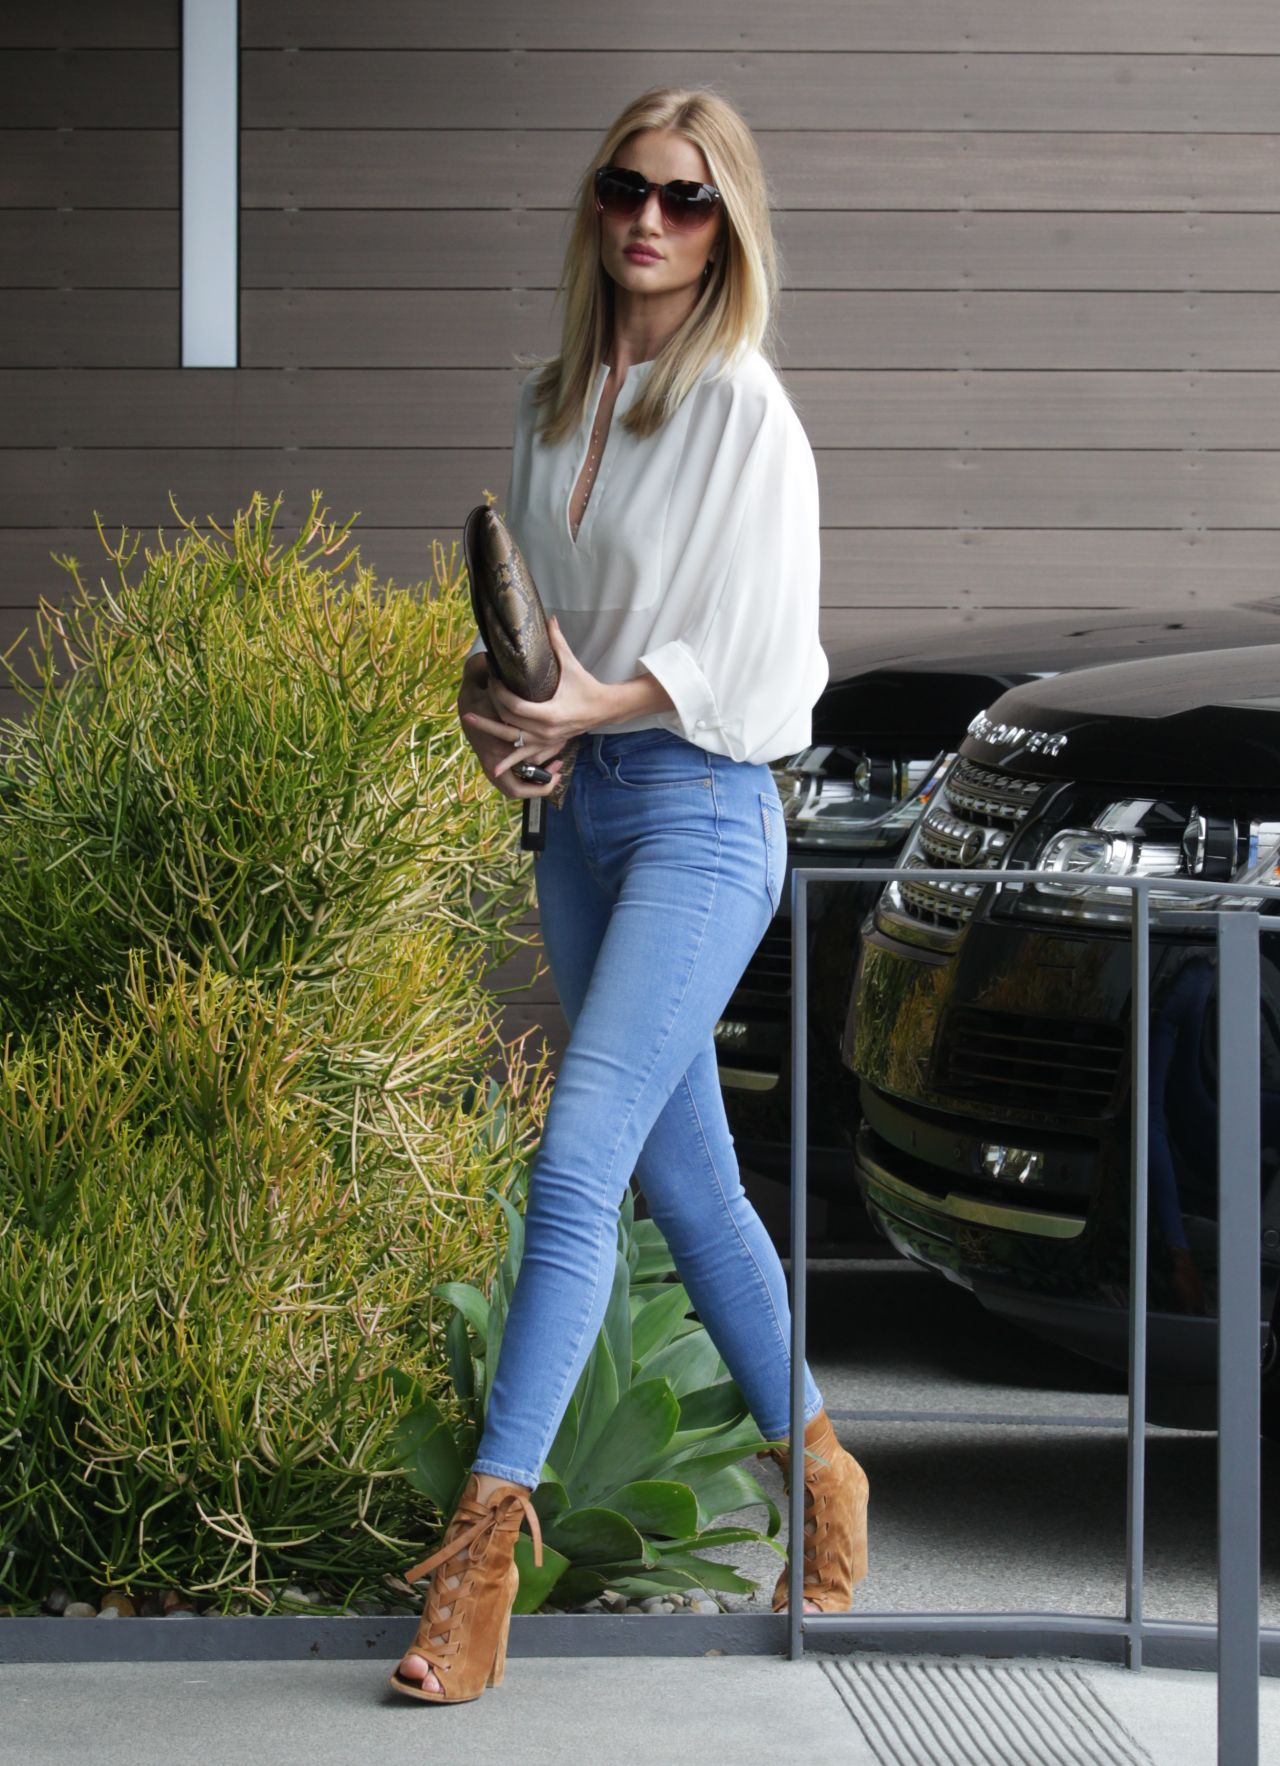 Rosie Huntington Whiteley In Really Tight Jeans At An